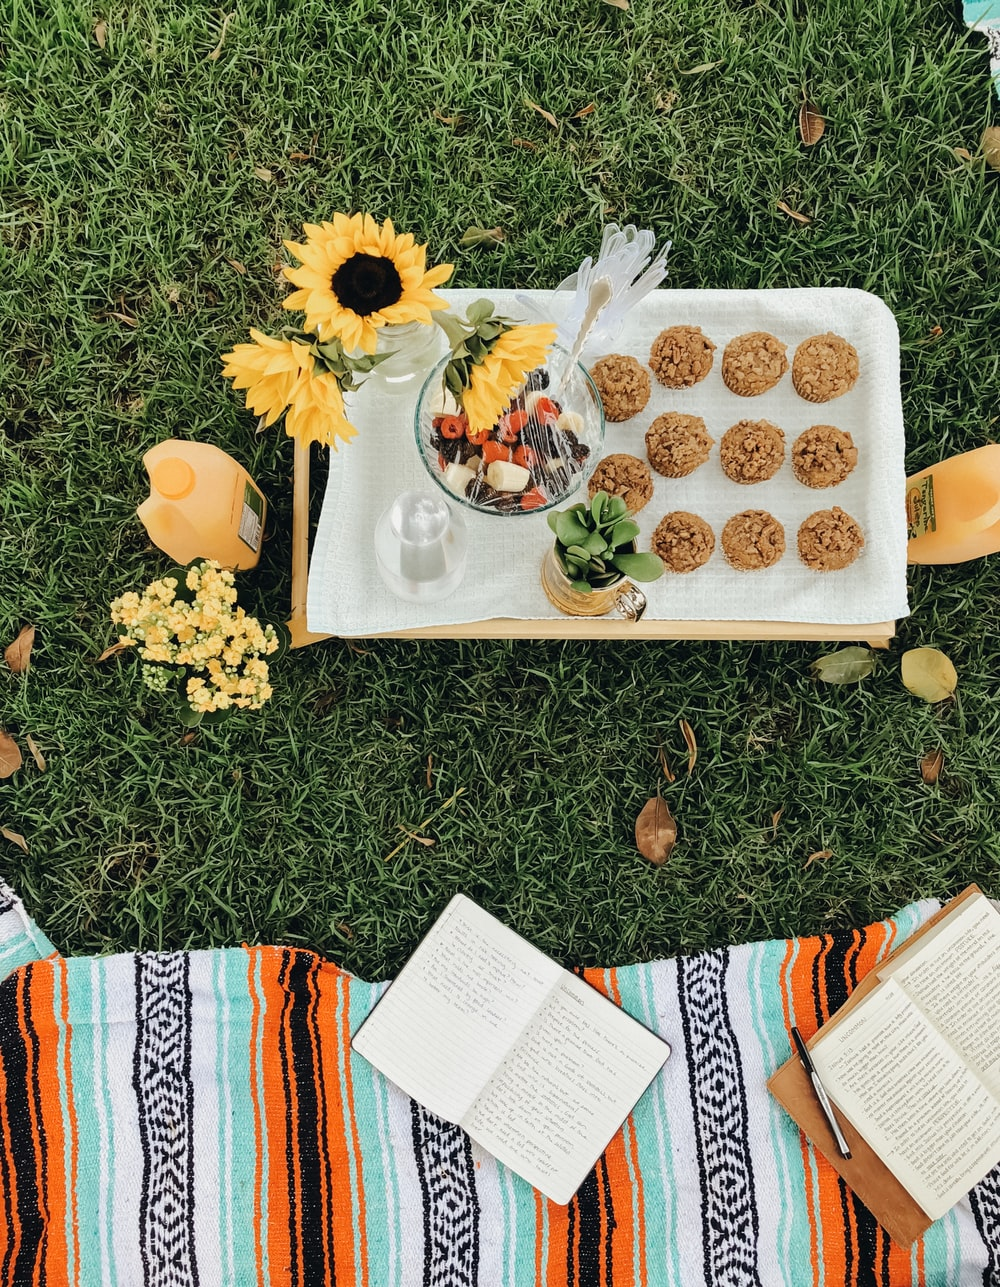 round baked pastries on white tray on green grass